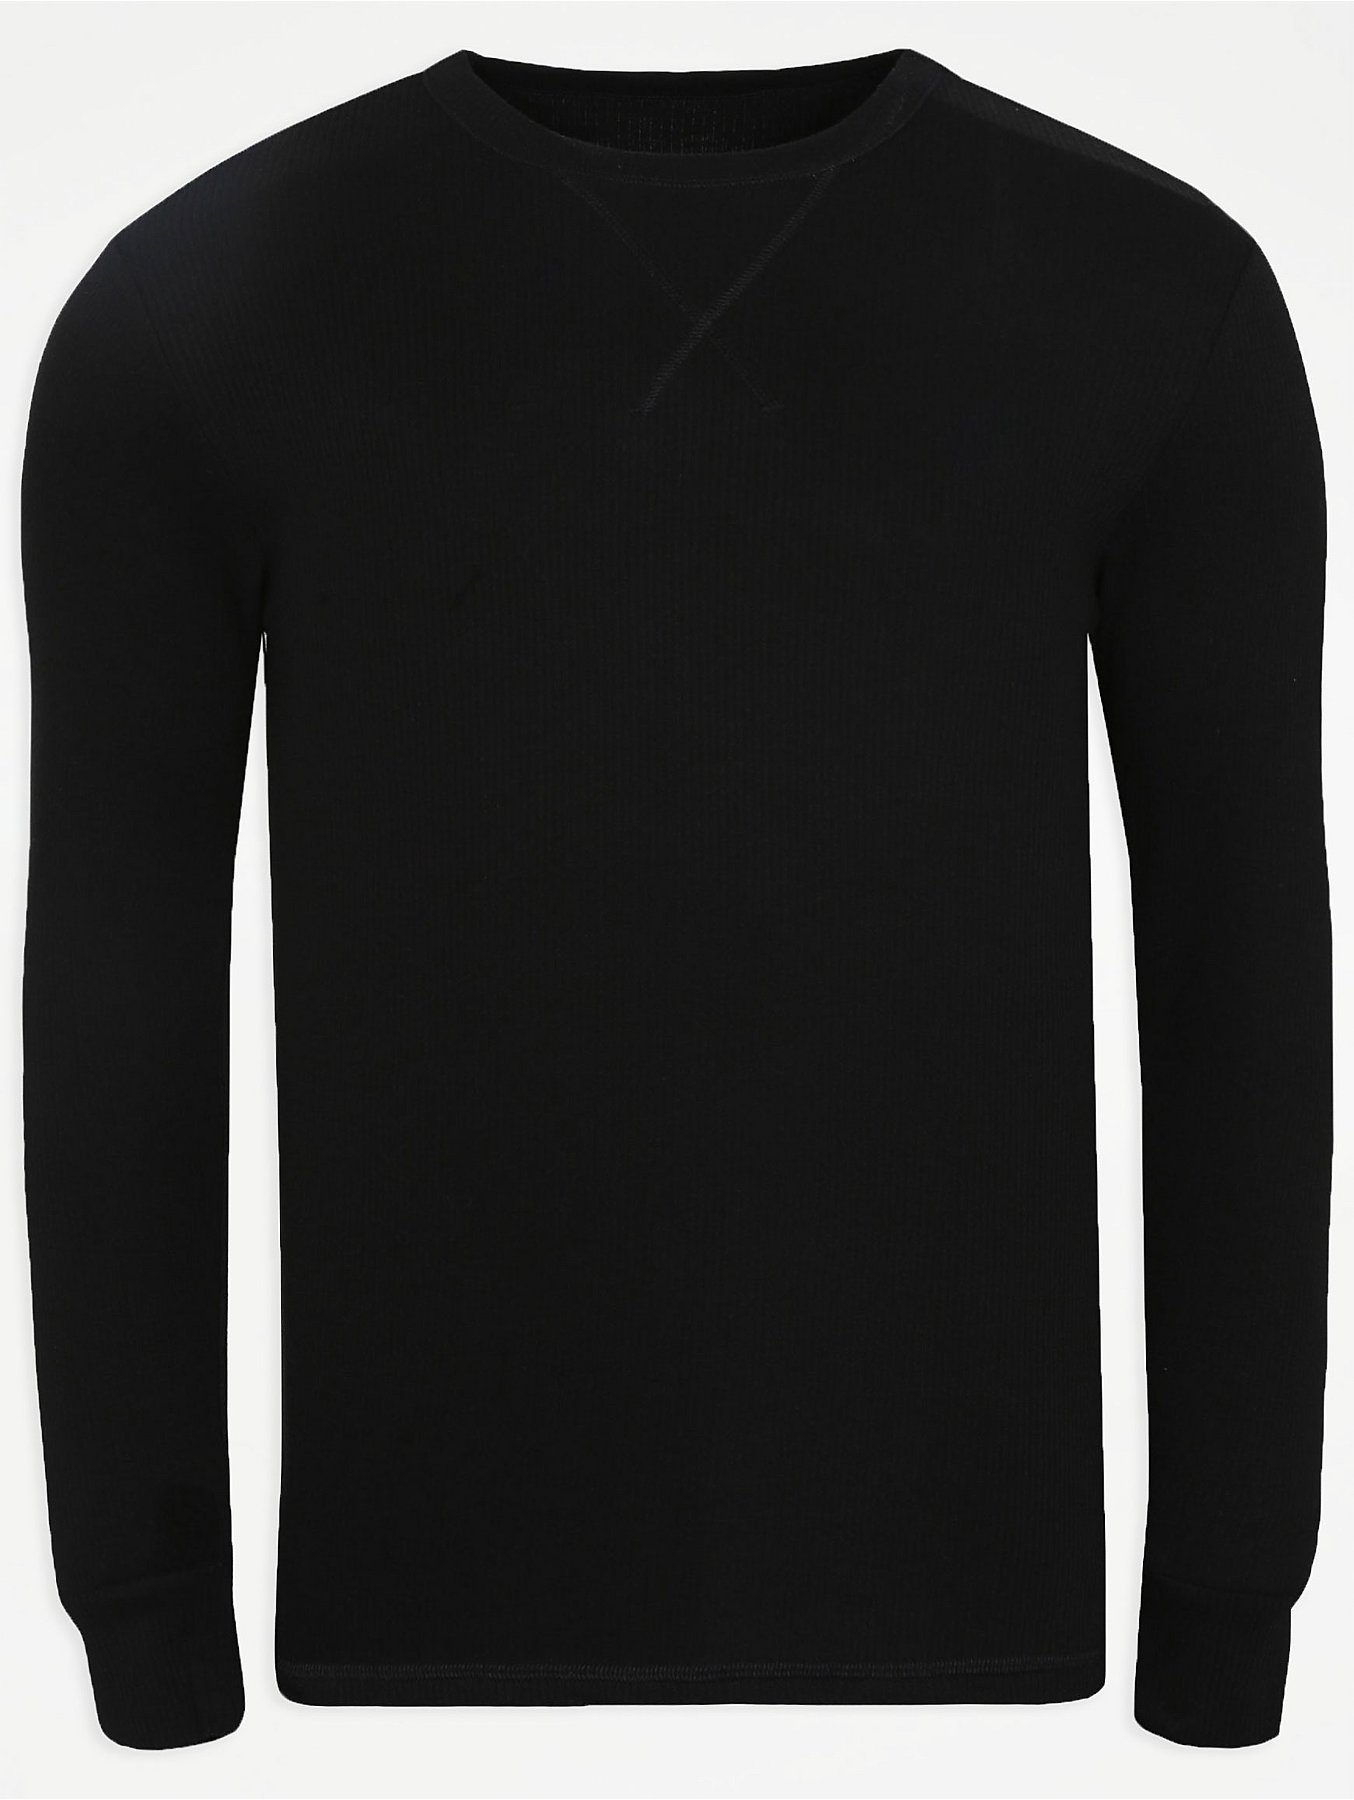 636964d6f55ca Thermal Crew Neck Long Sleeve Top